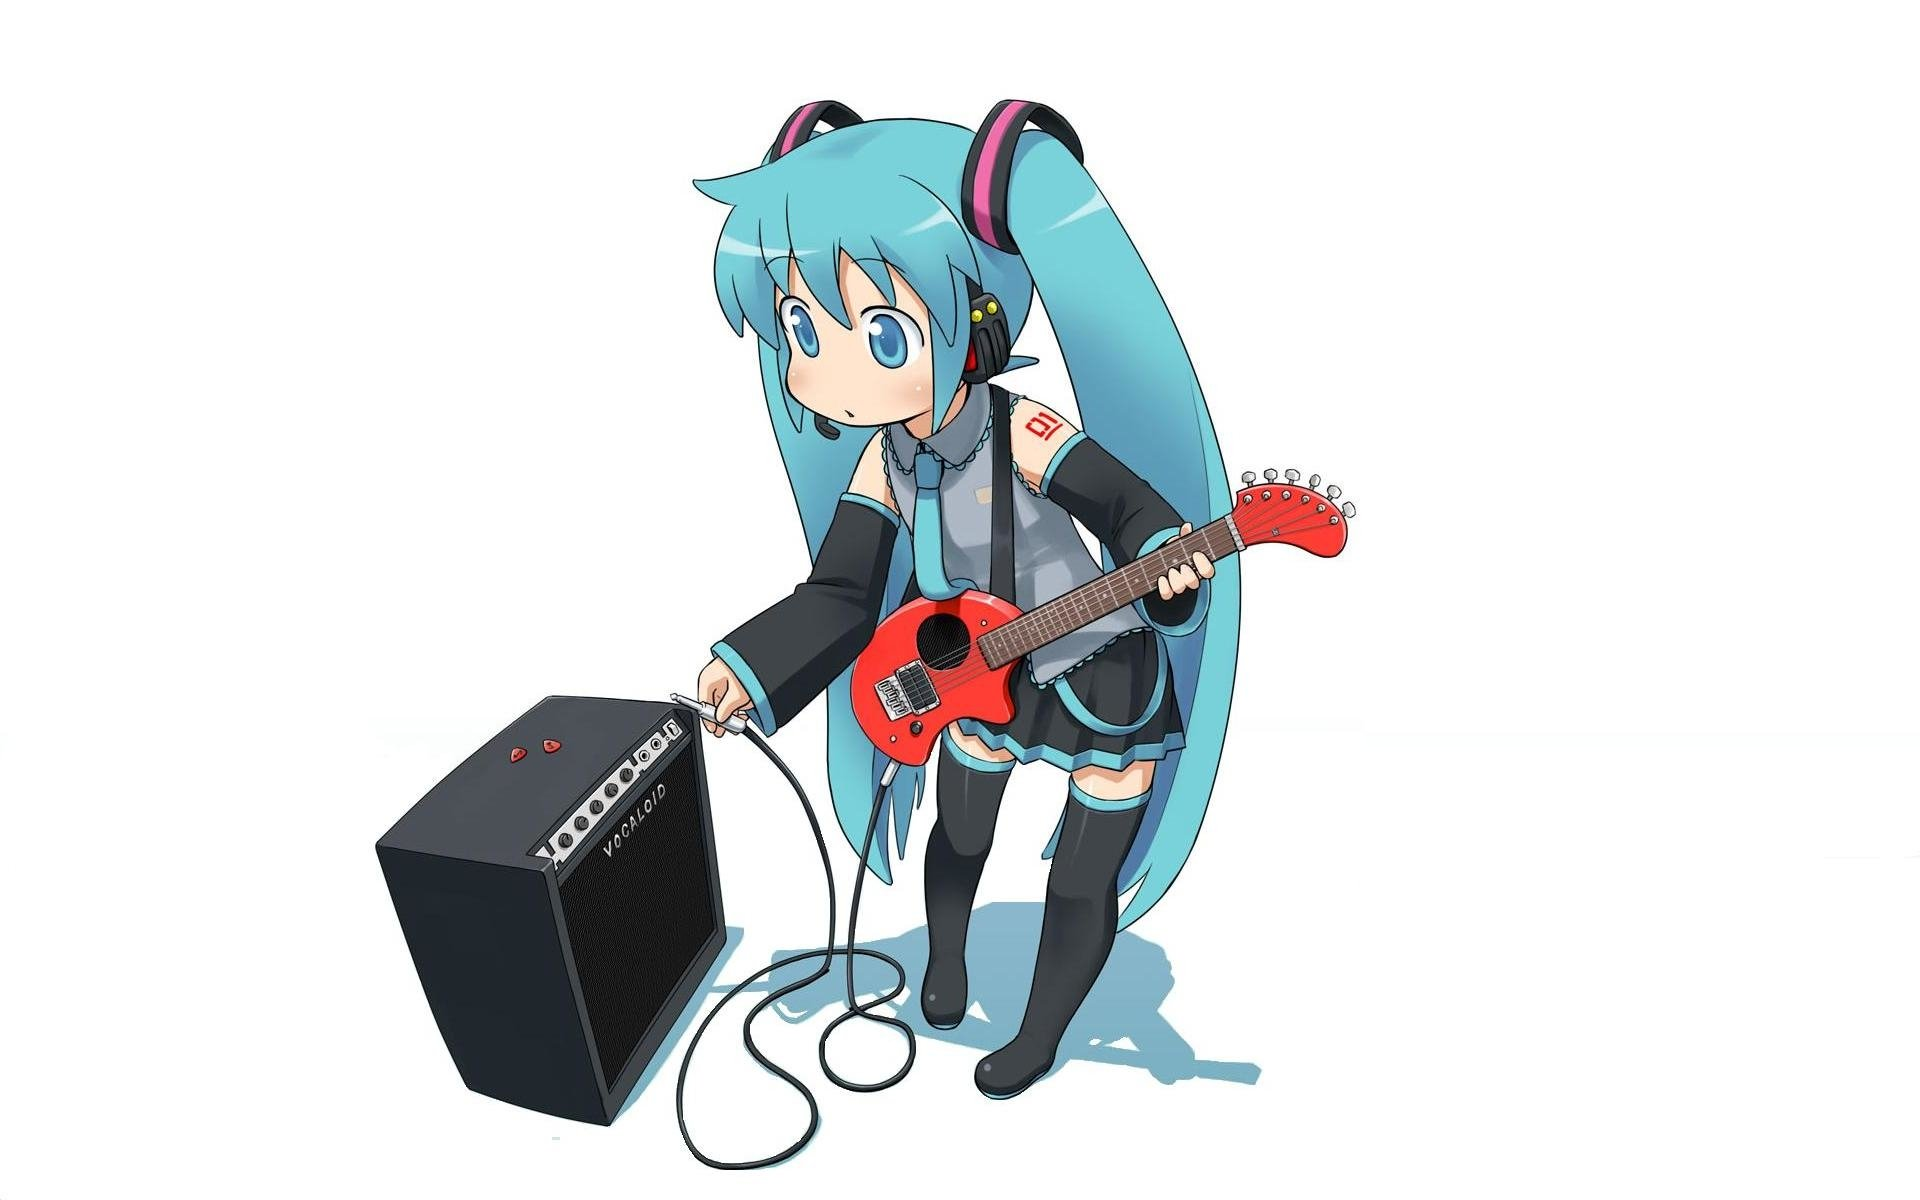 Anime - Vocaloid  Hatsune Miku Guitar Wallpaper